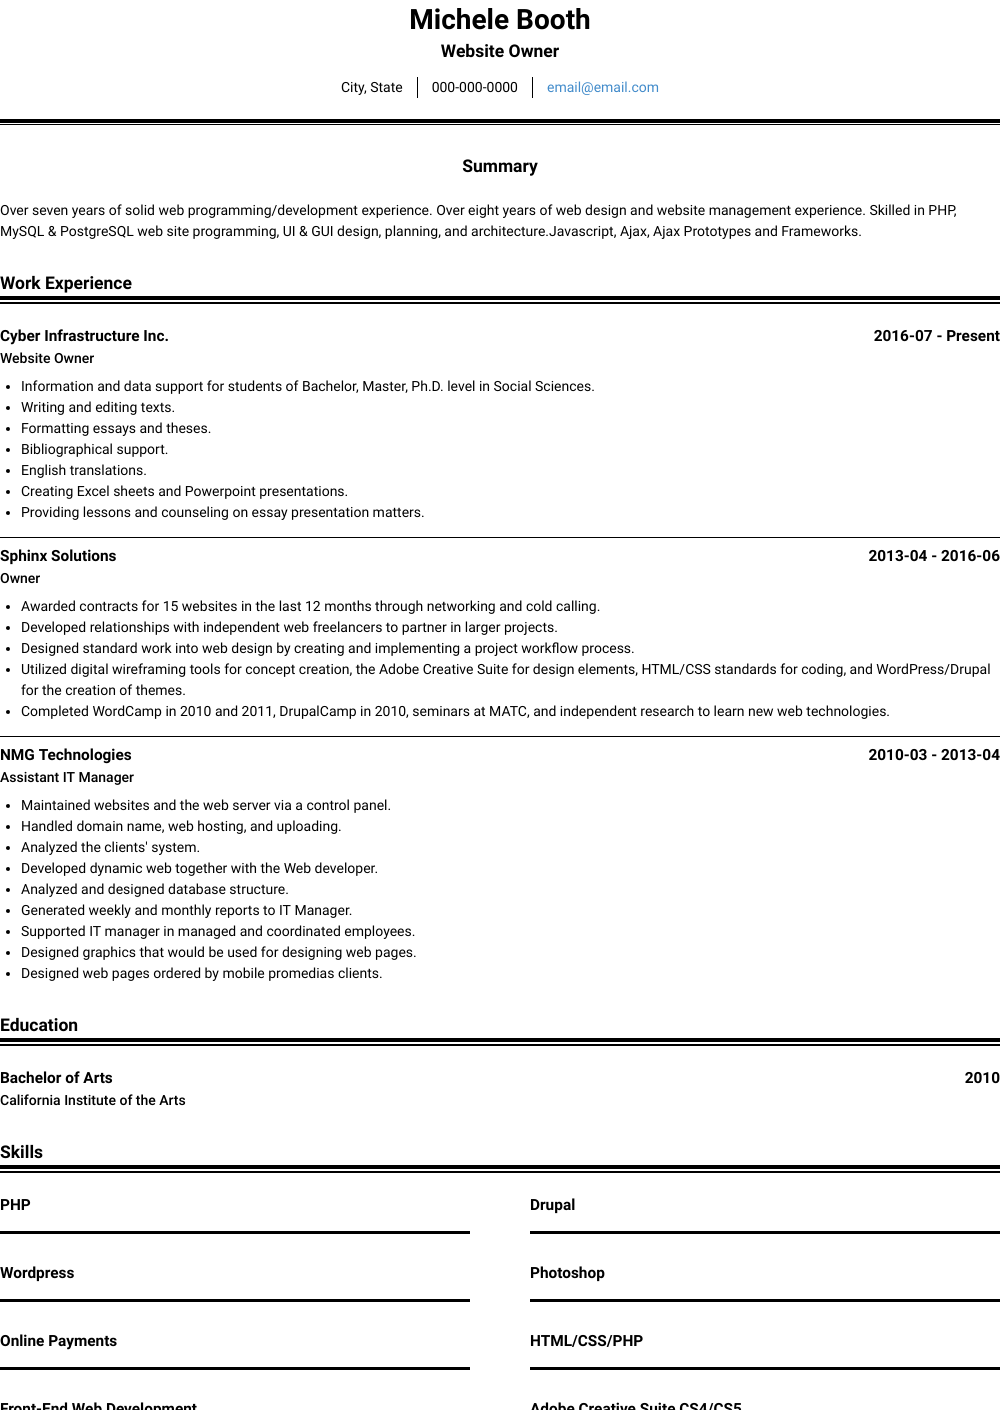 Website Owner Resume Sample and Template